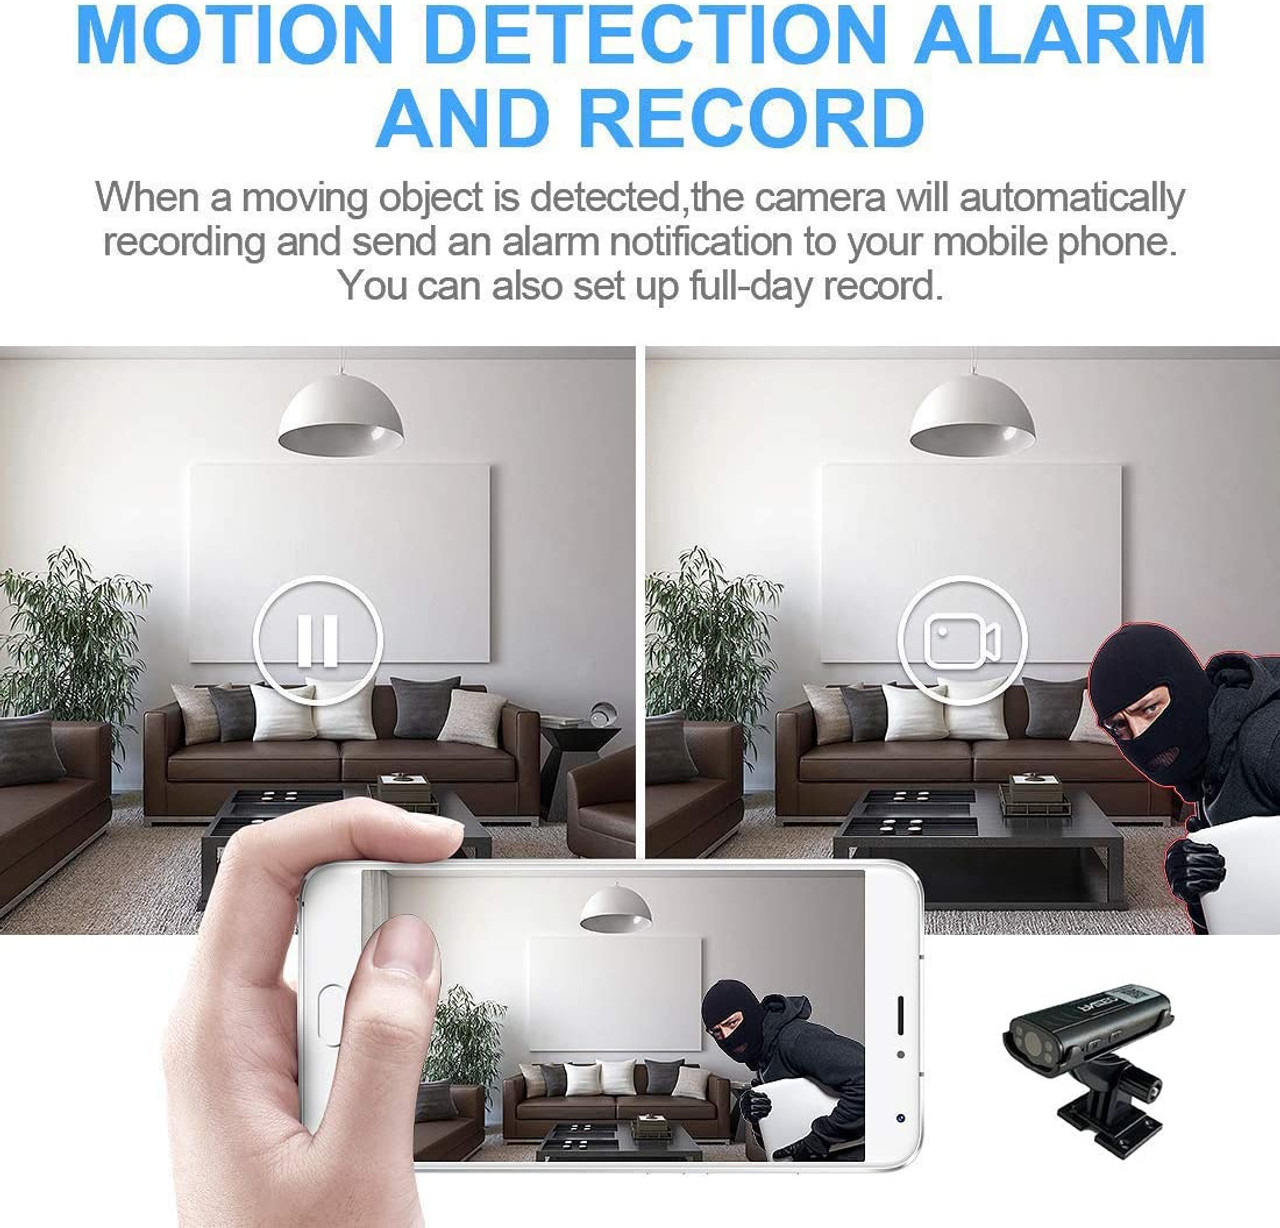 Portable Wireless WiFi Remote View Camera With Audio - Home Security Cameras Indoor Outdoor Video Record Smart Motion Detection with night vision